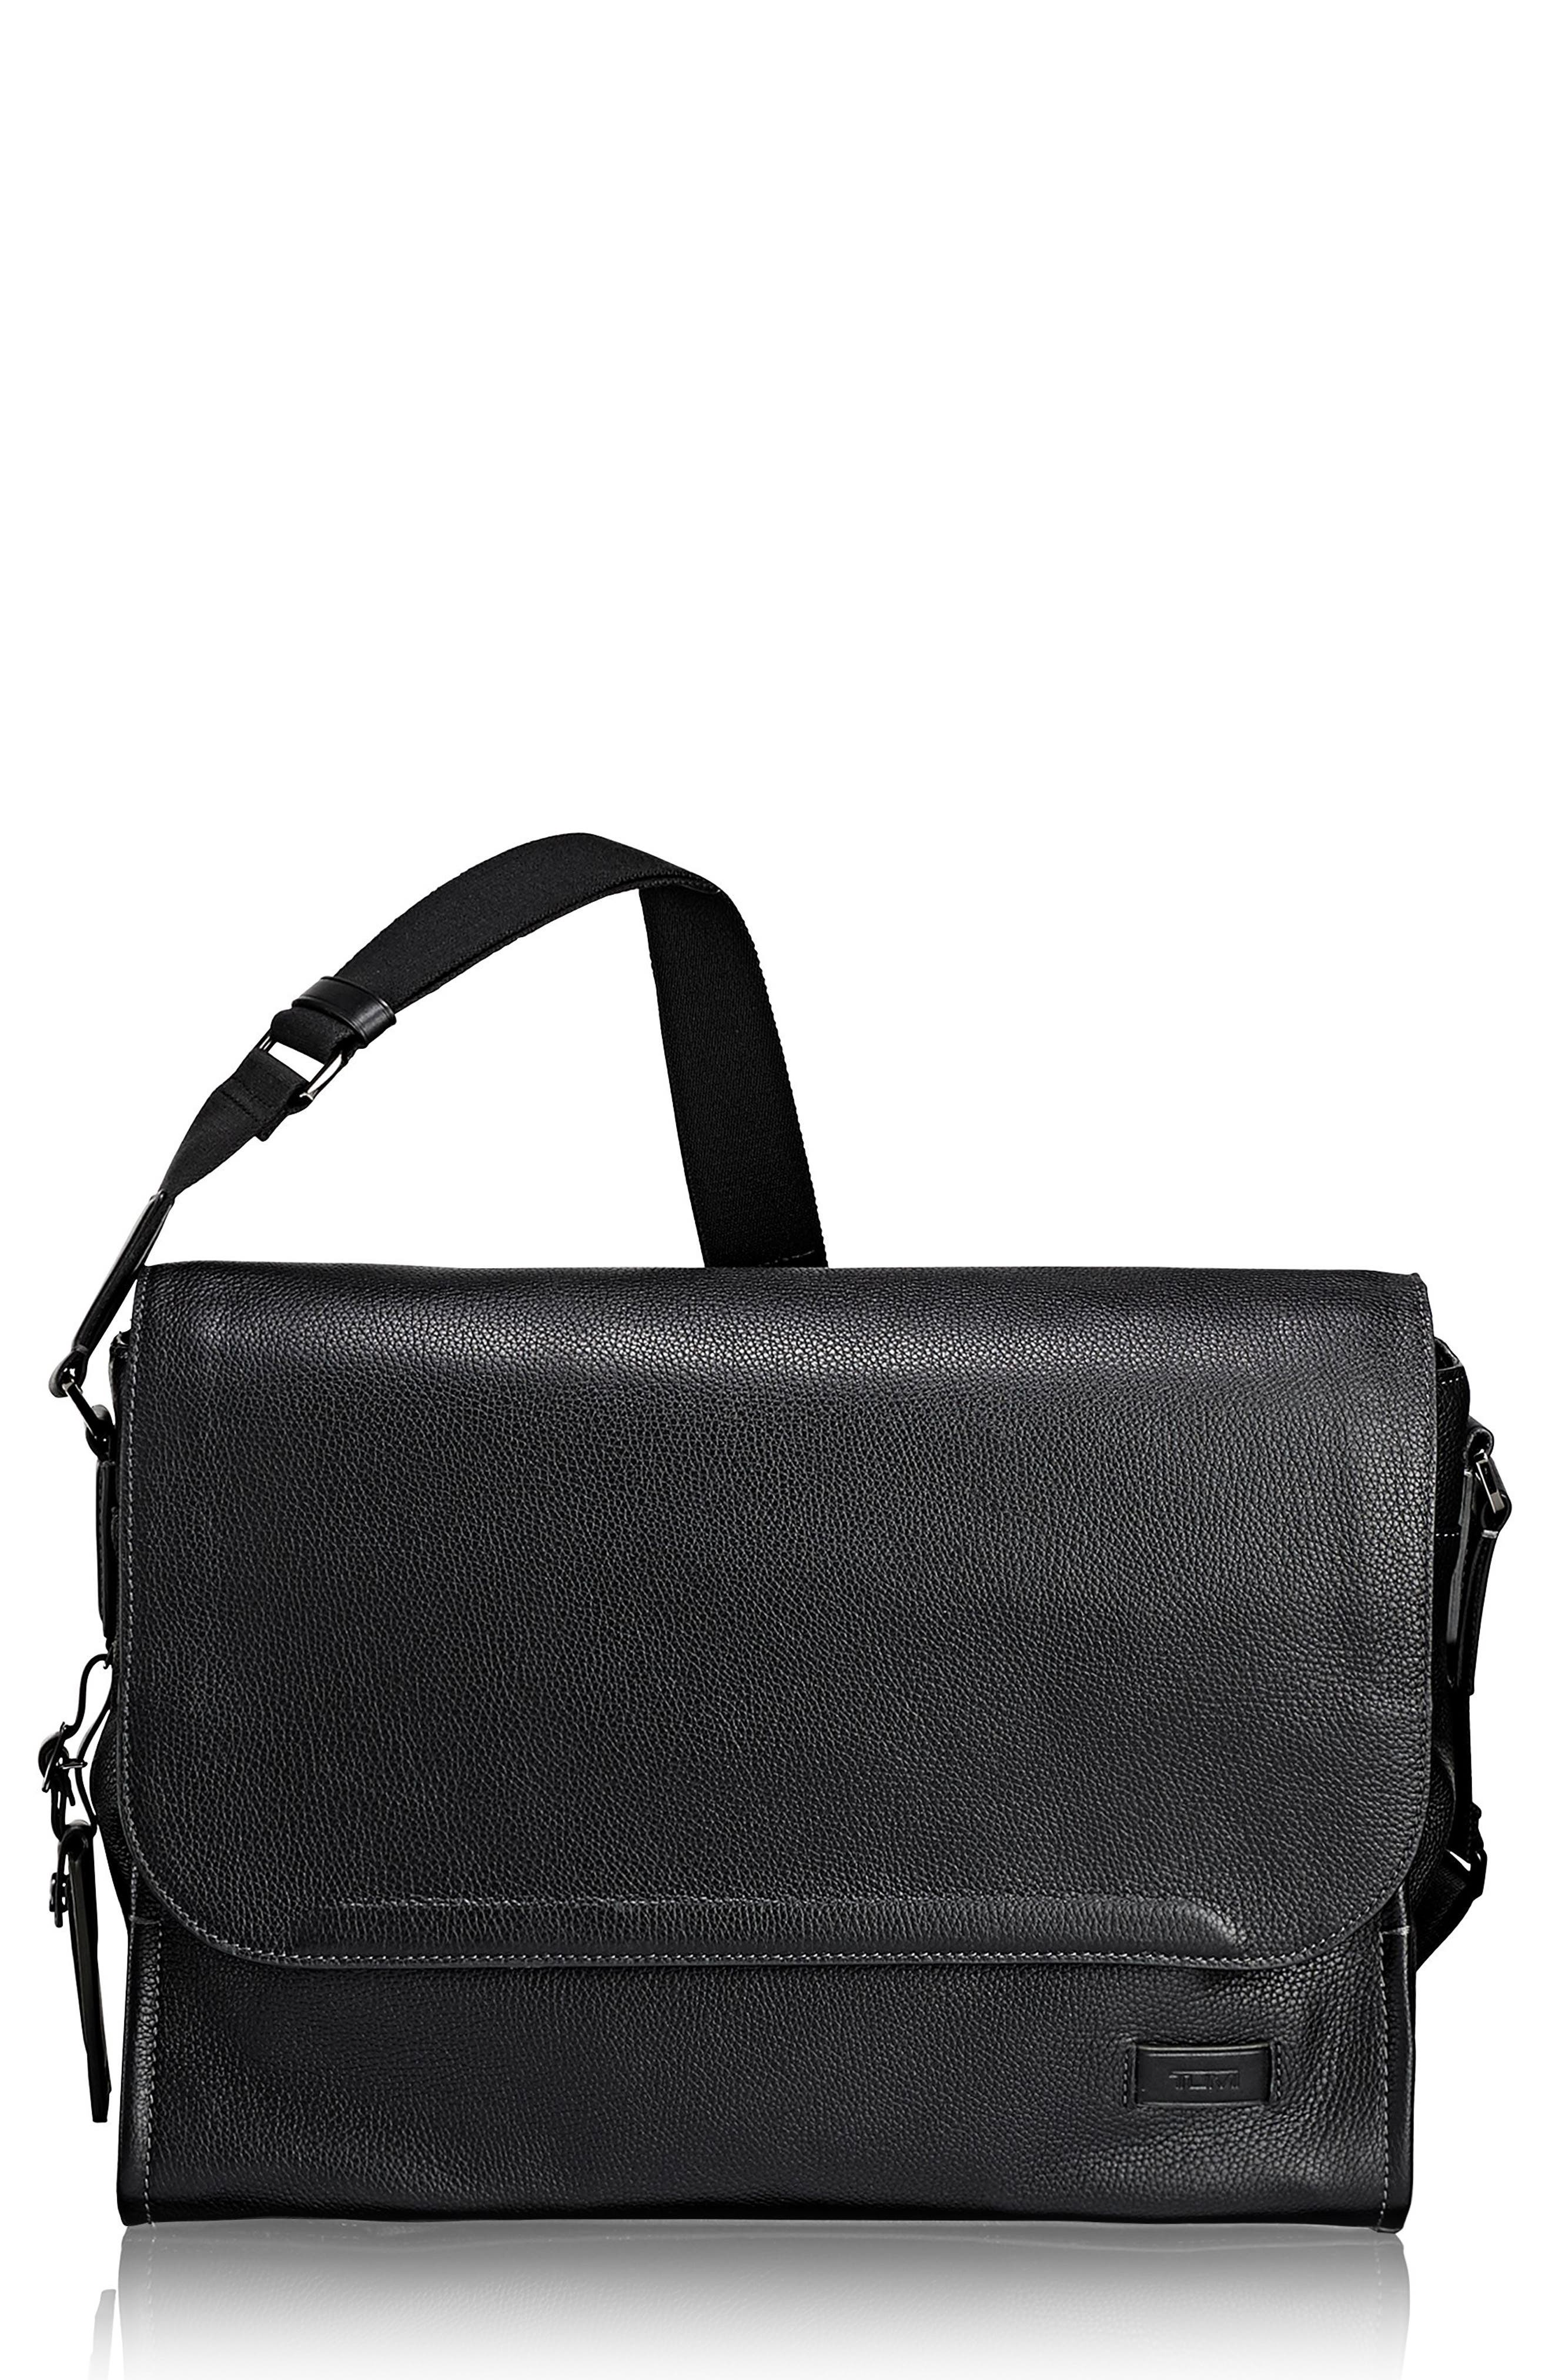 Harrison - Mathews Messenger Bag,                         Main,                         color, Black